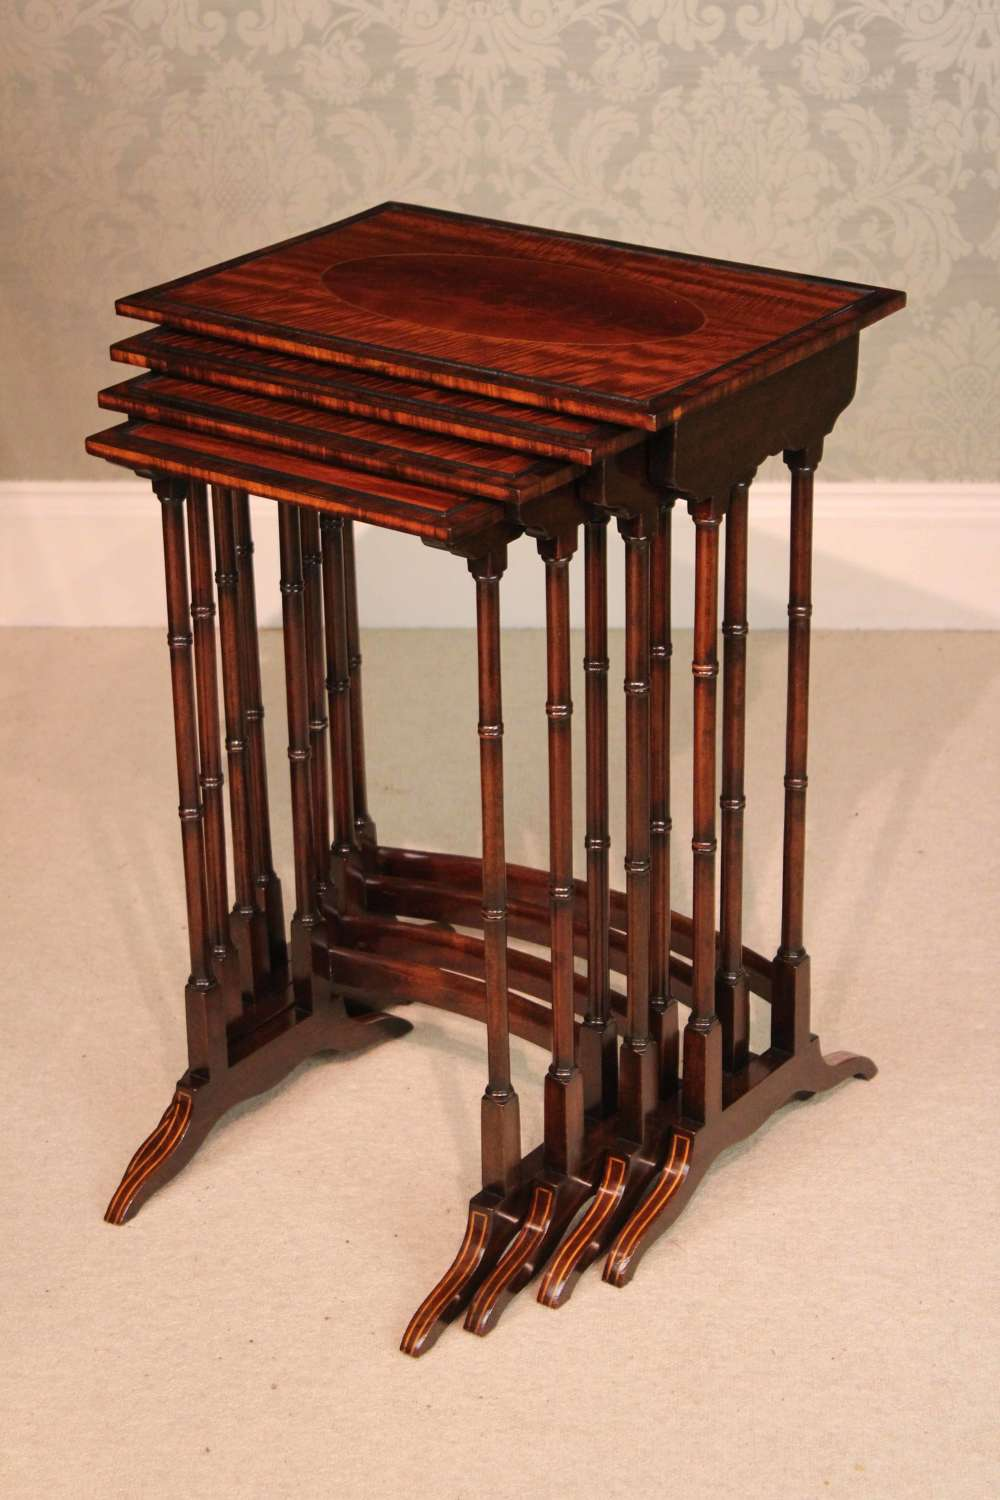 The Quality Late Victorian Mahogany Inlaid Quarteto Tables